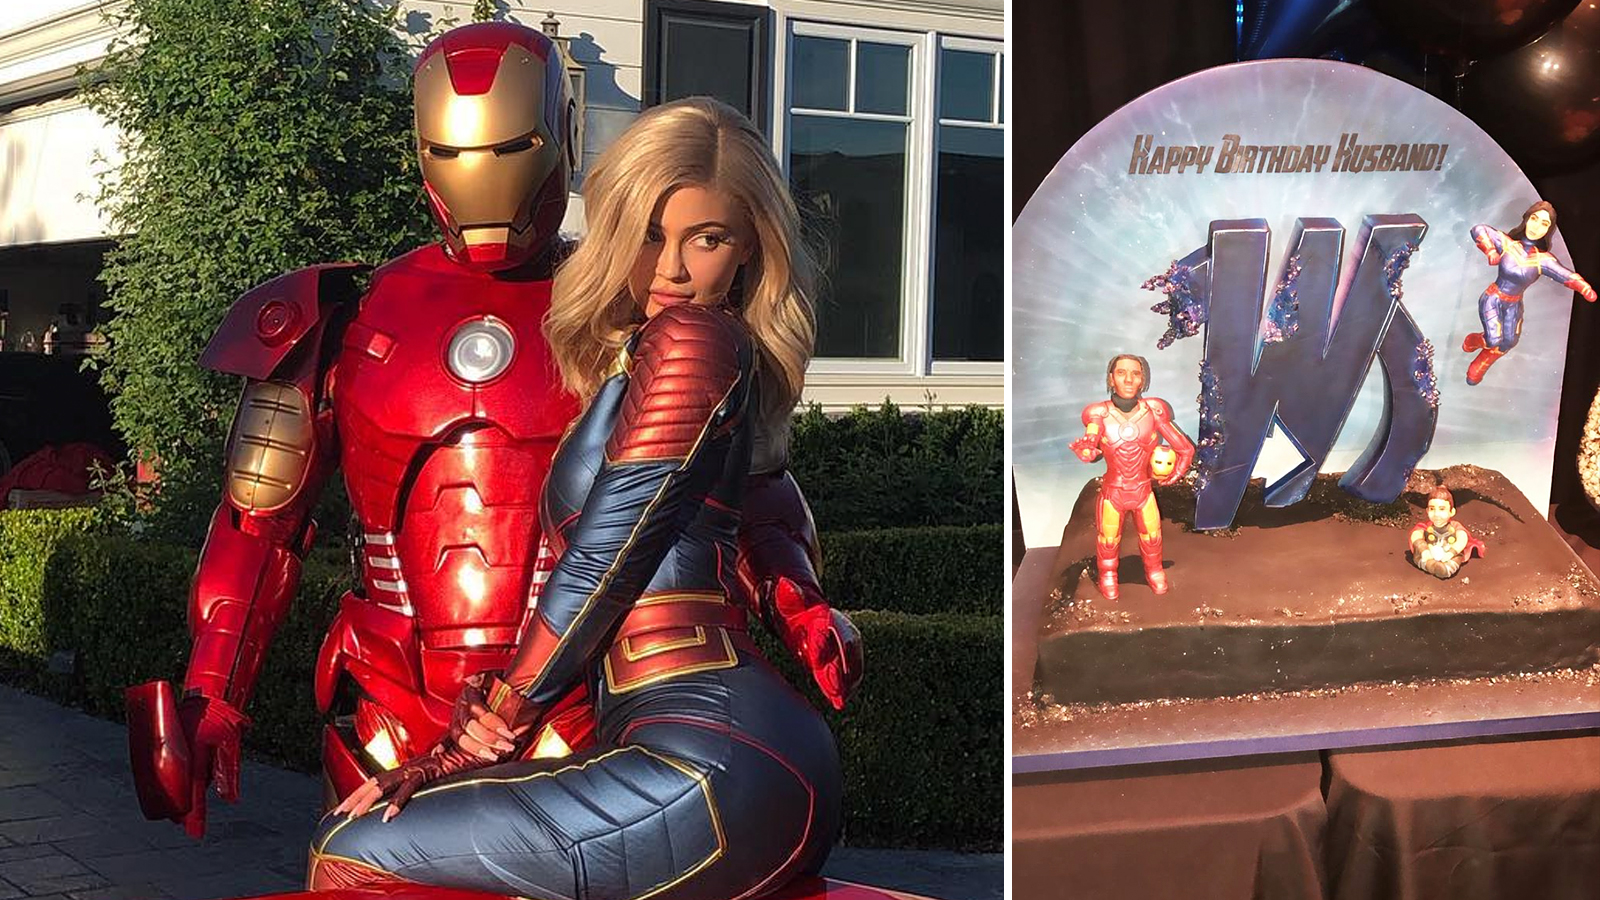 Kylie Jenner Throws Husband Travis Scott Avengers Birthday Party Check out our kylie jenner costume selection for the very best in unique or custom, handmade pieces from our costumes shops. travis scott avengers birthday party